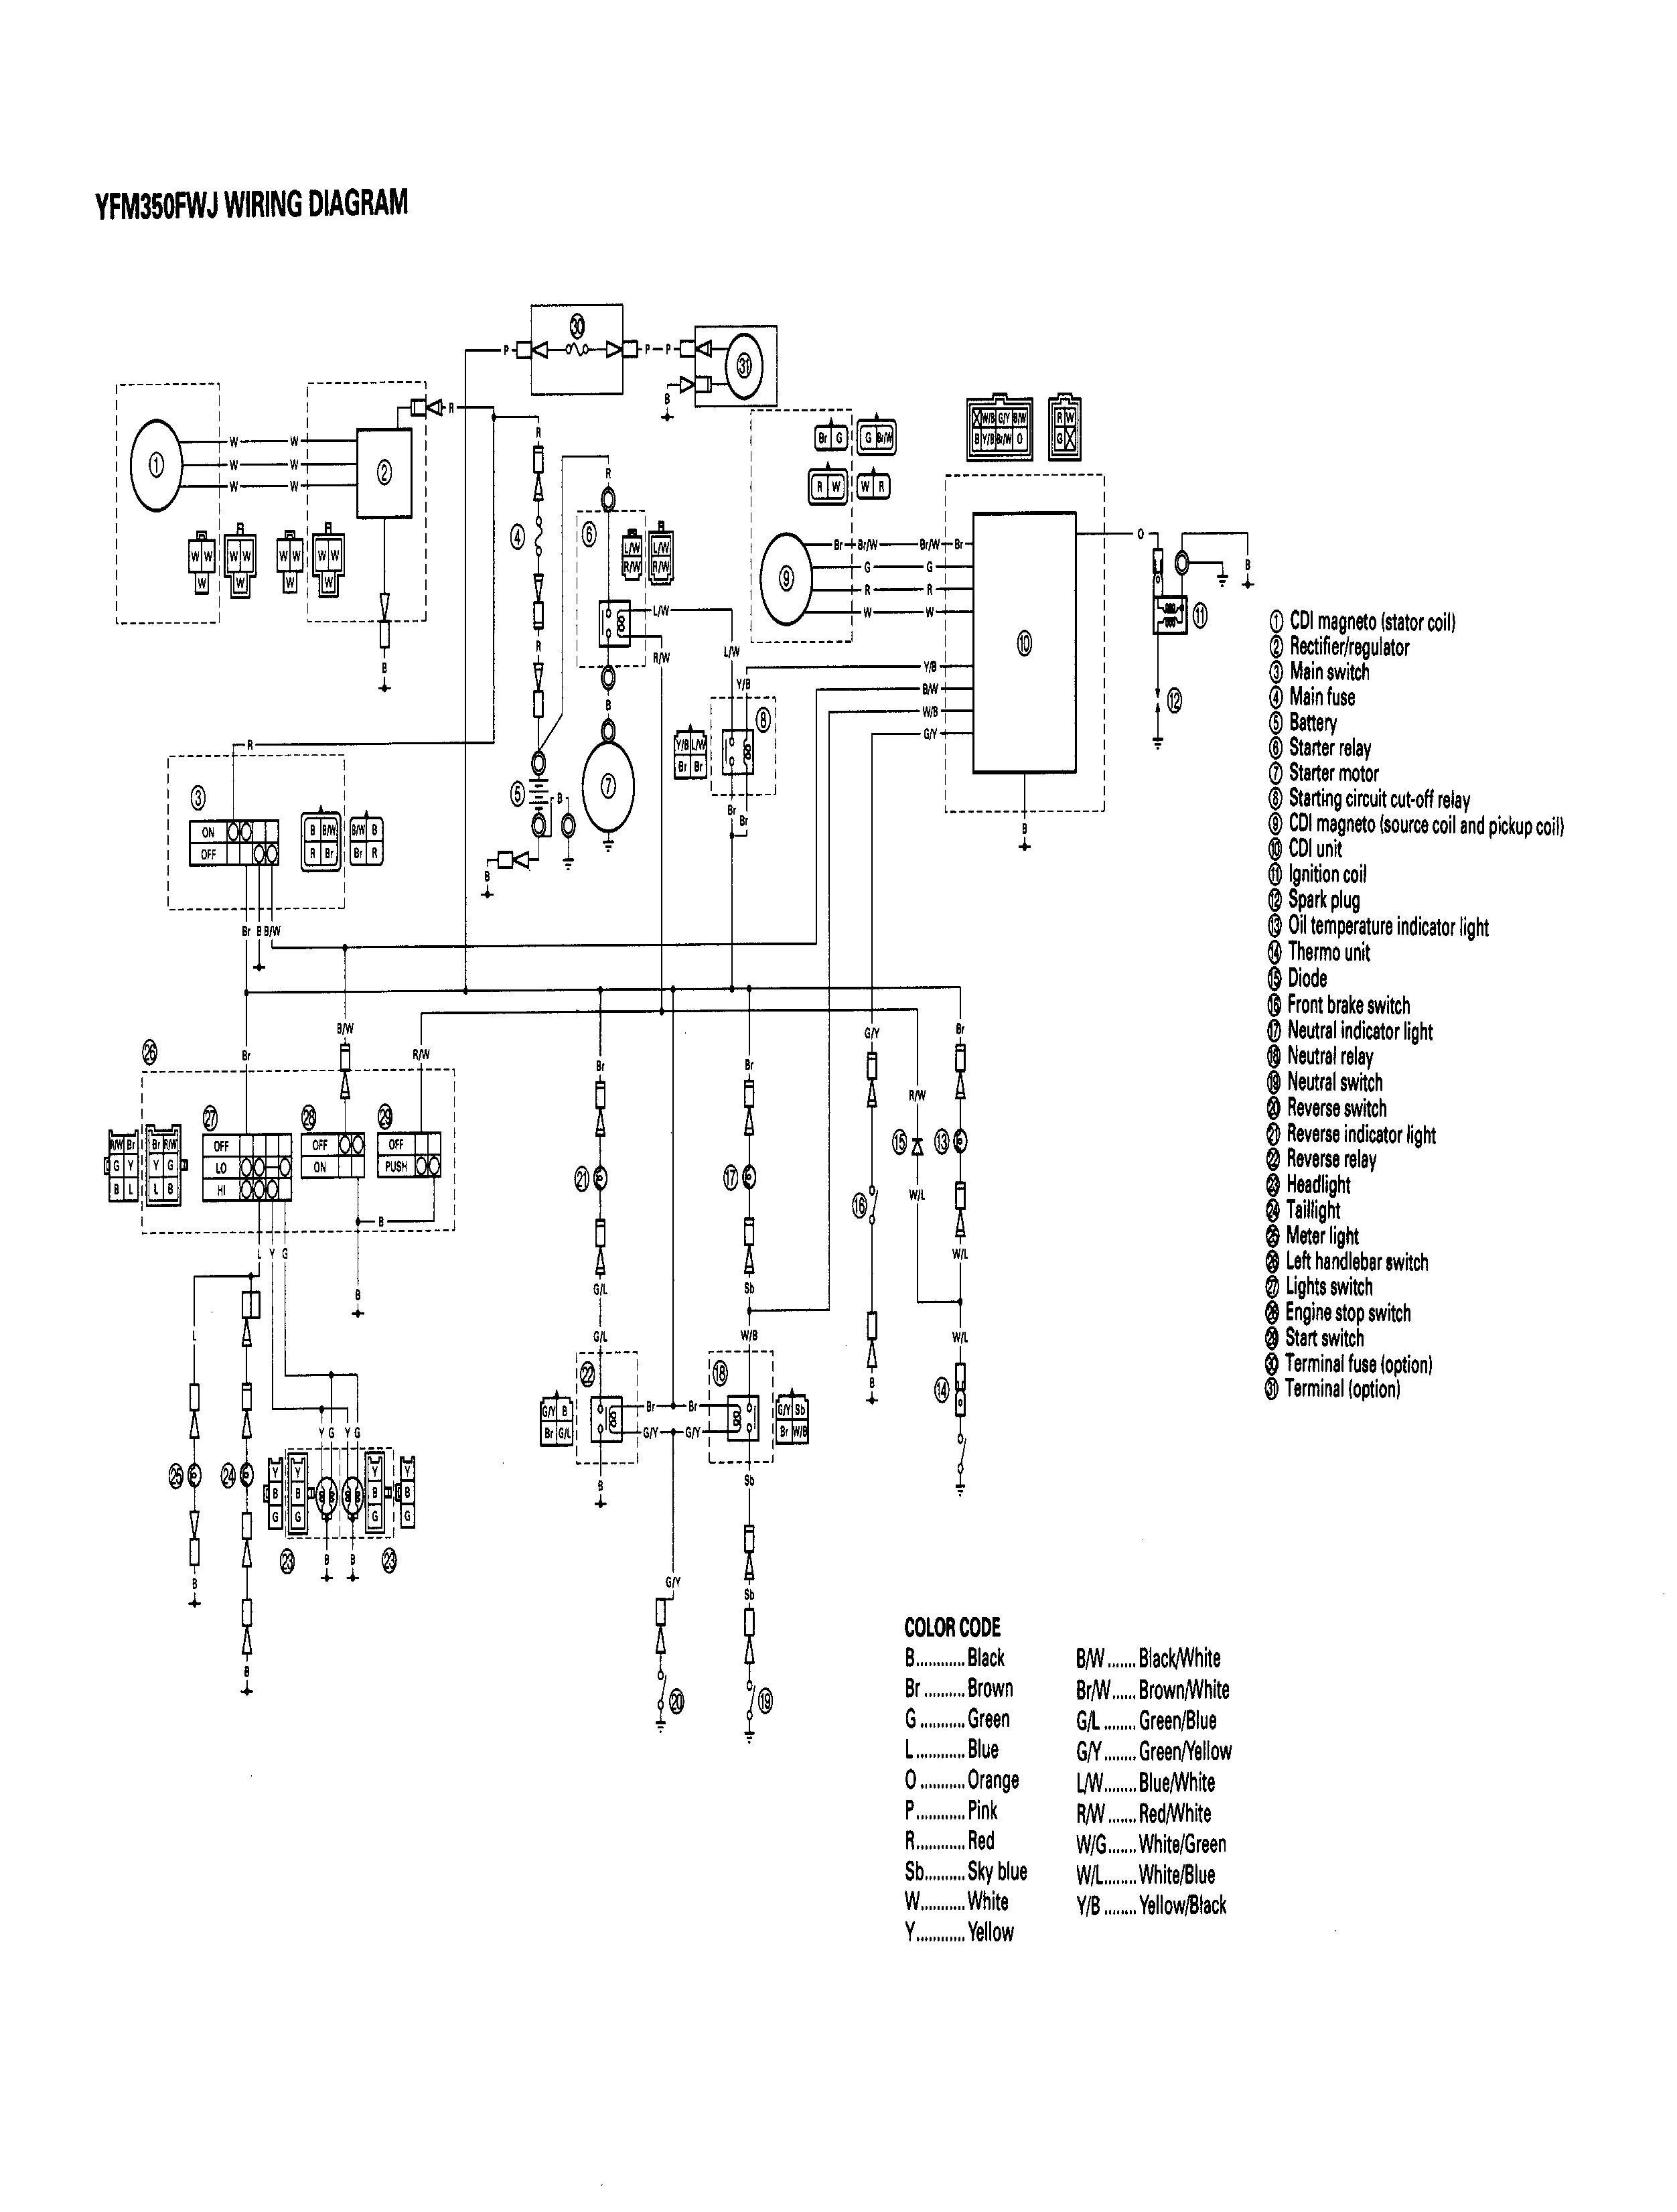 yamaha big bear 400 wiring diagram 1996 bigbear 350 4x4 wiring - yamaha grizzly atv forum 1999 yamaha big bear 350 wiring diagram